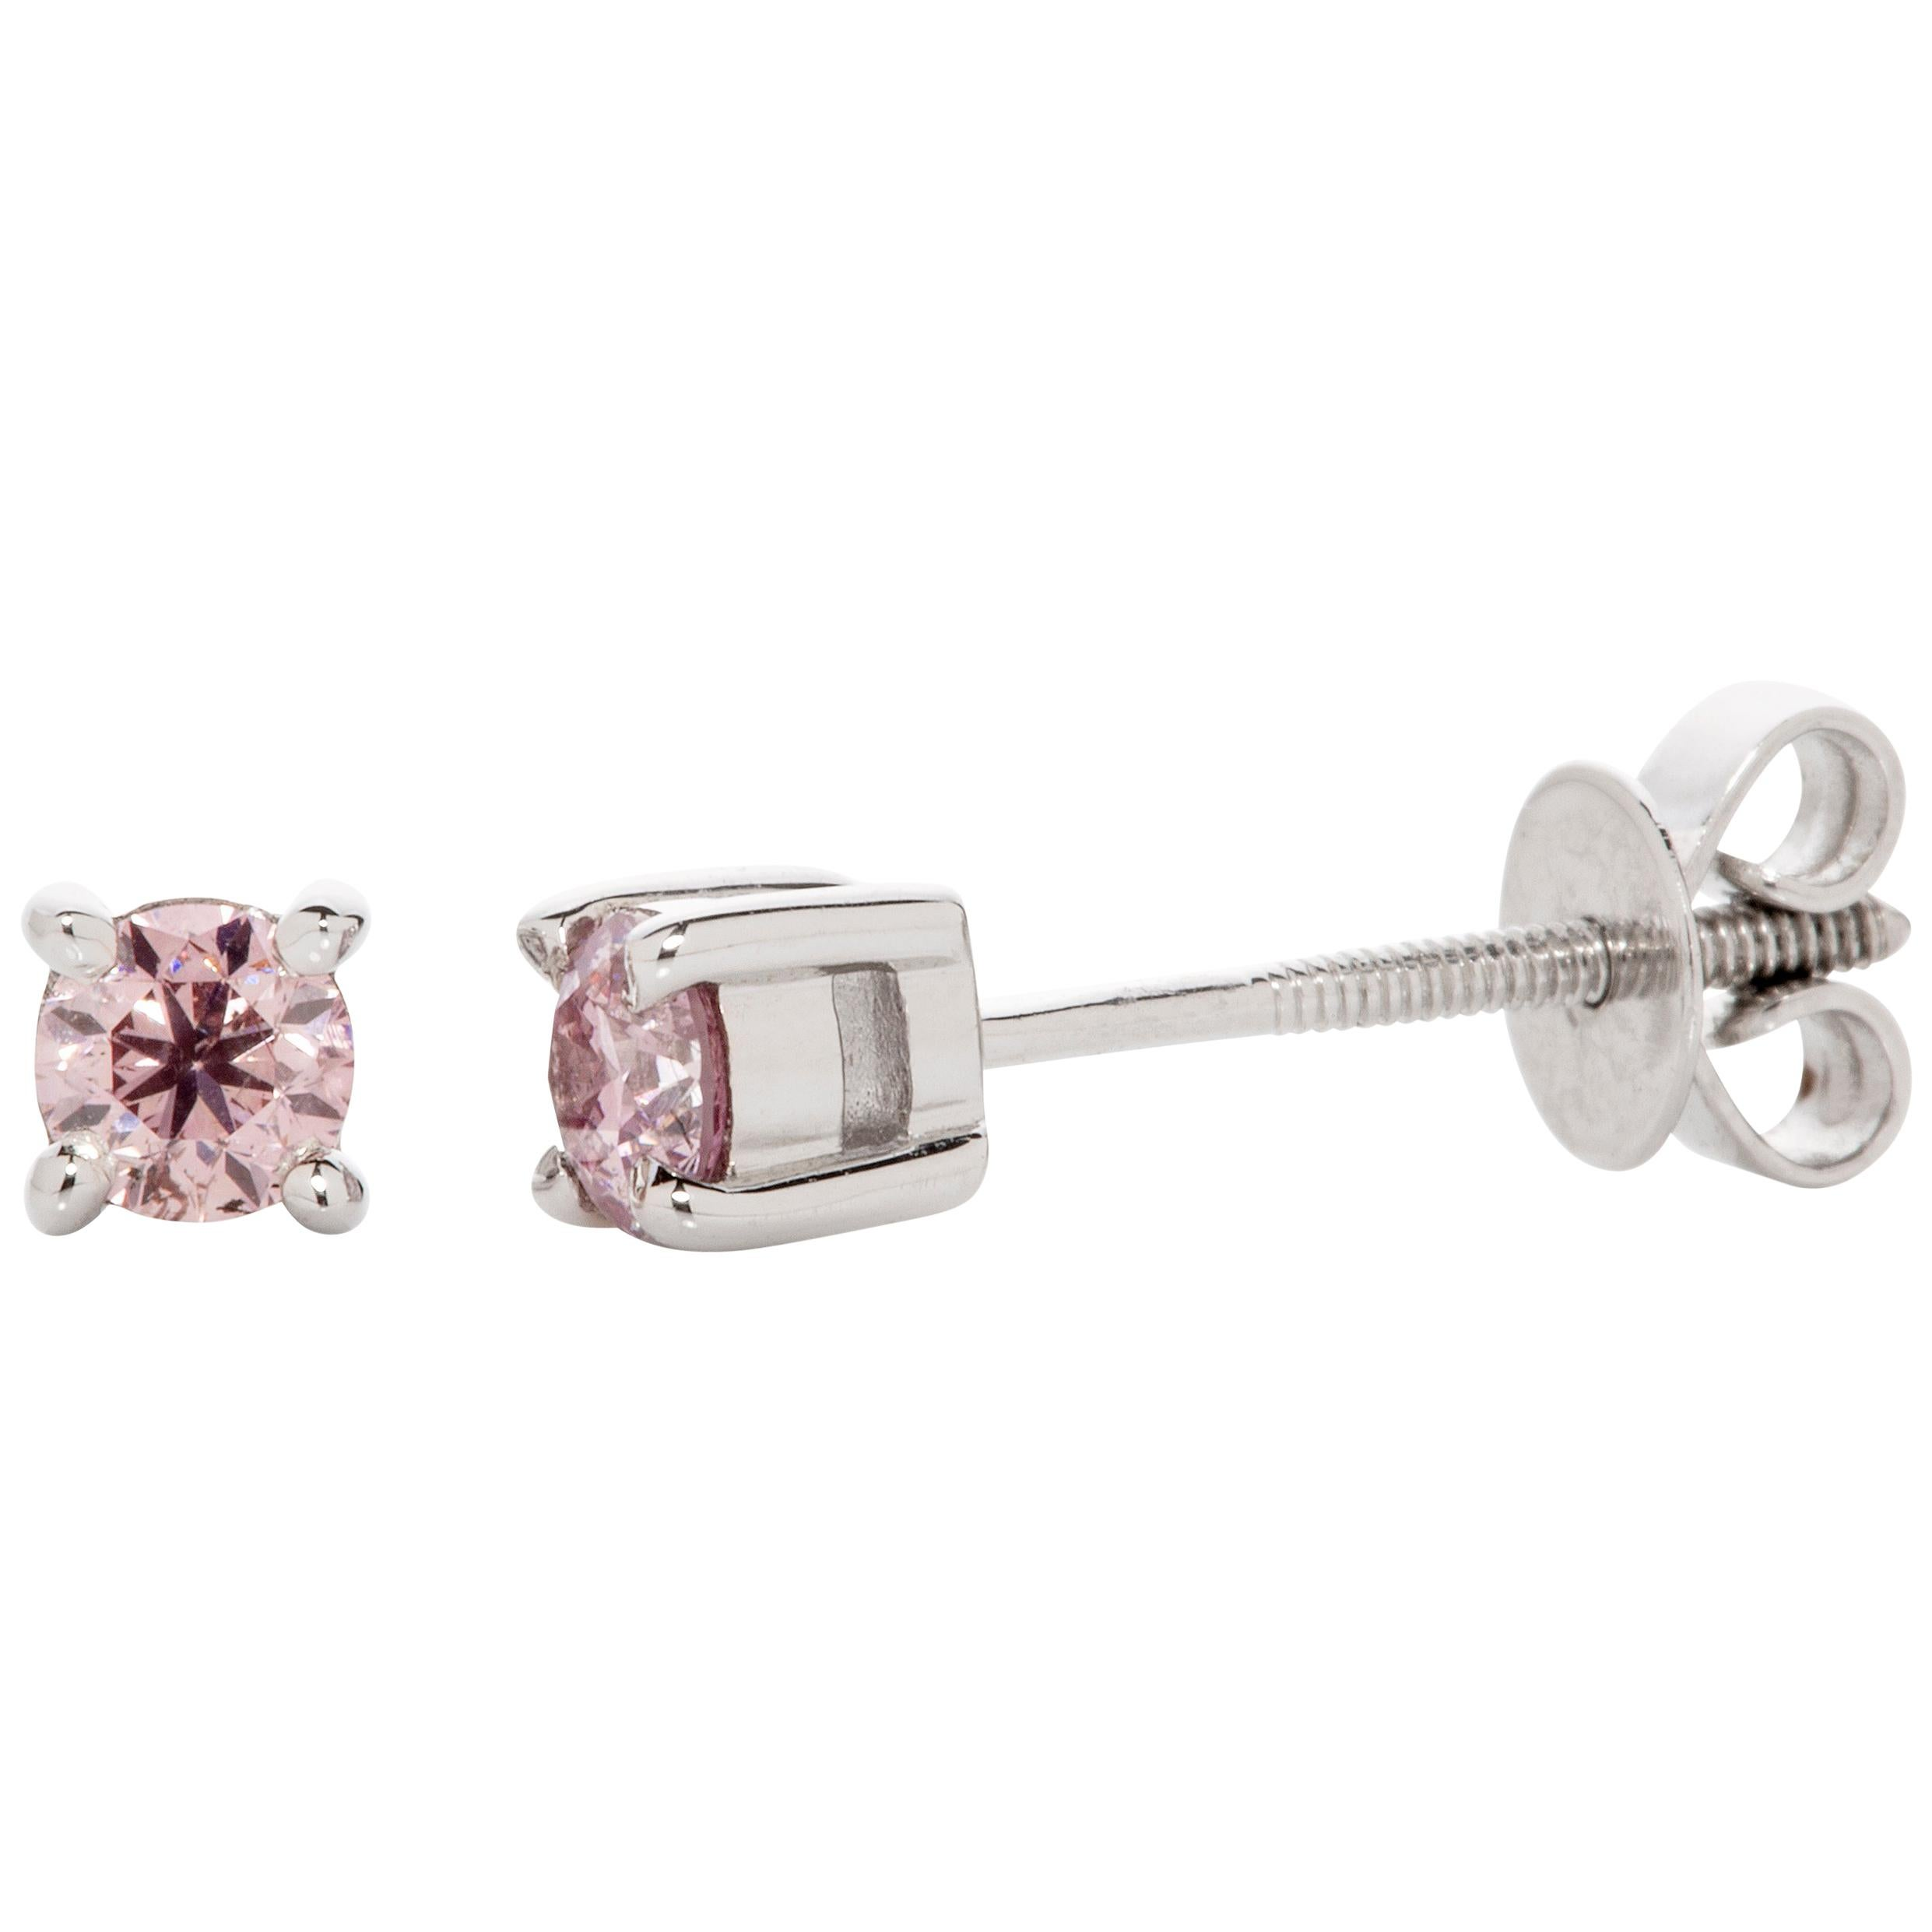 cfbee633e Round Cut Stud Earrings - 1,142 For Sale at 1stdibs